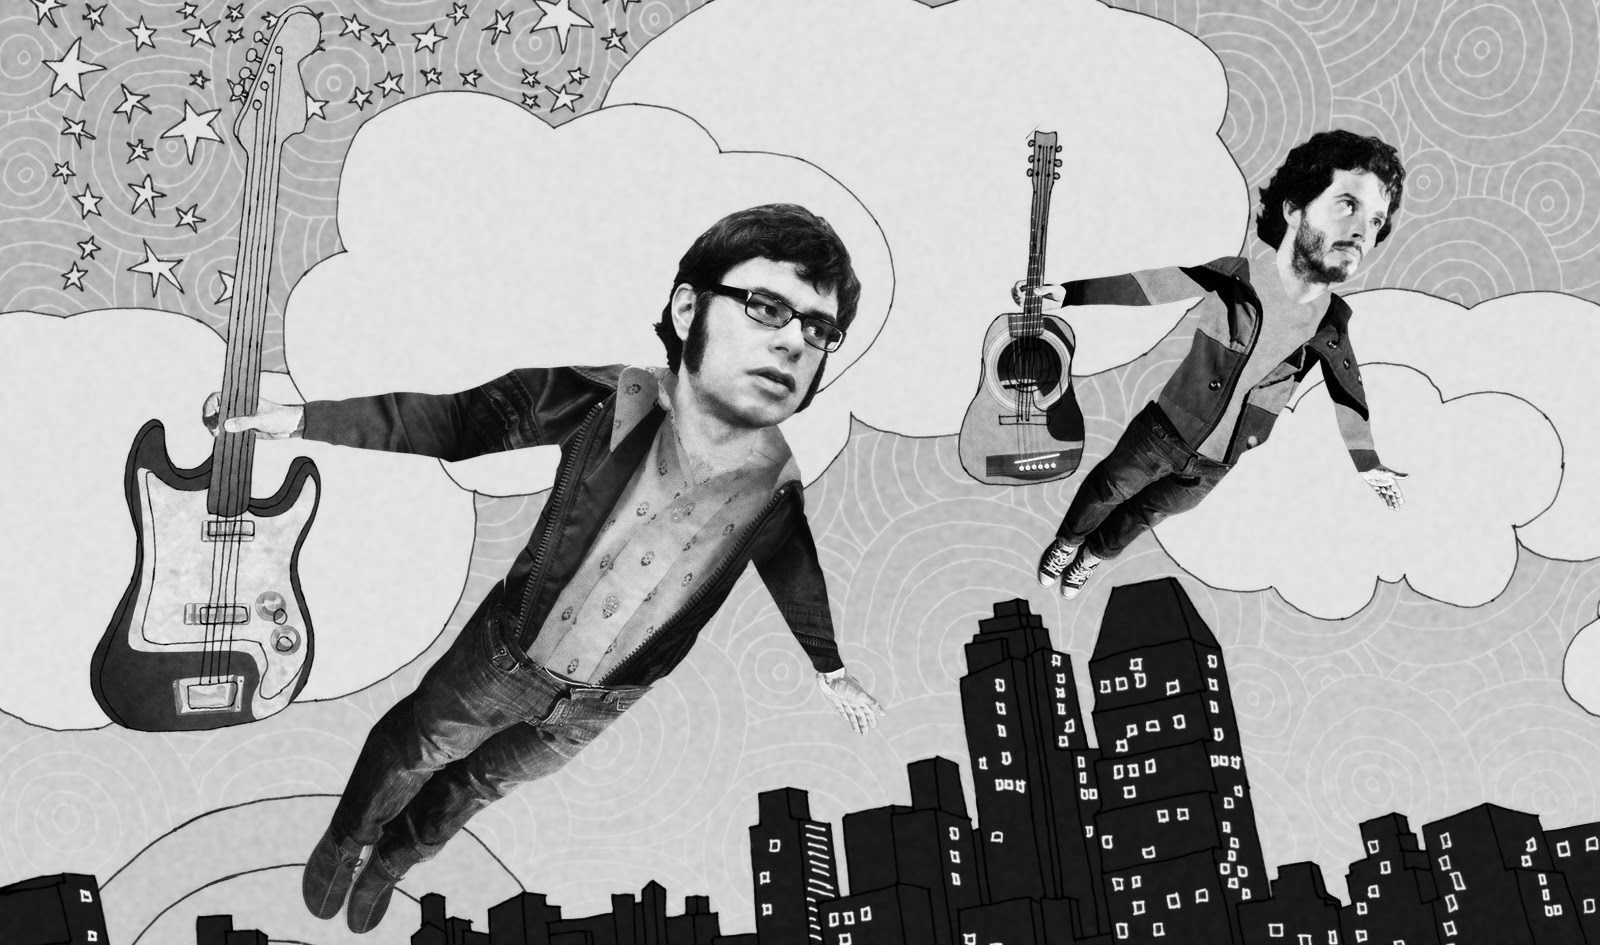 Flight of the Conchords